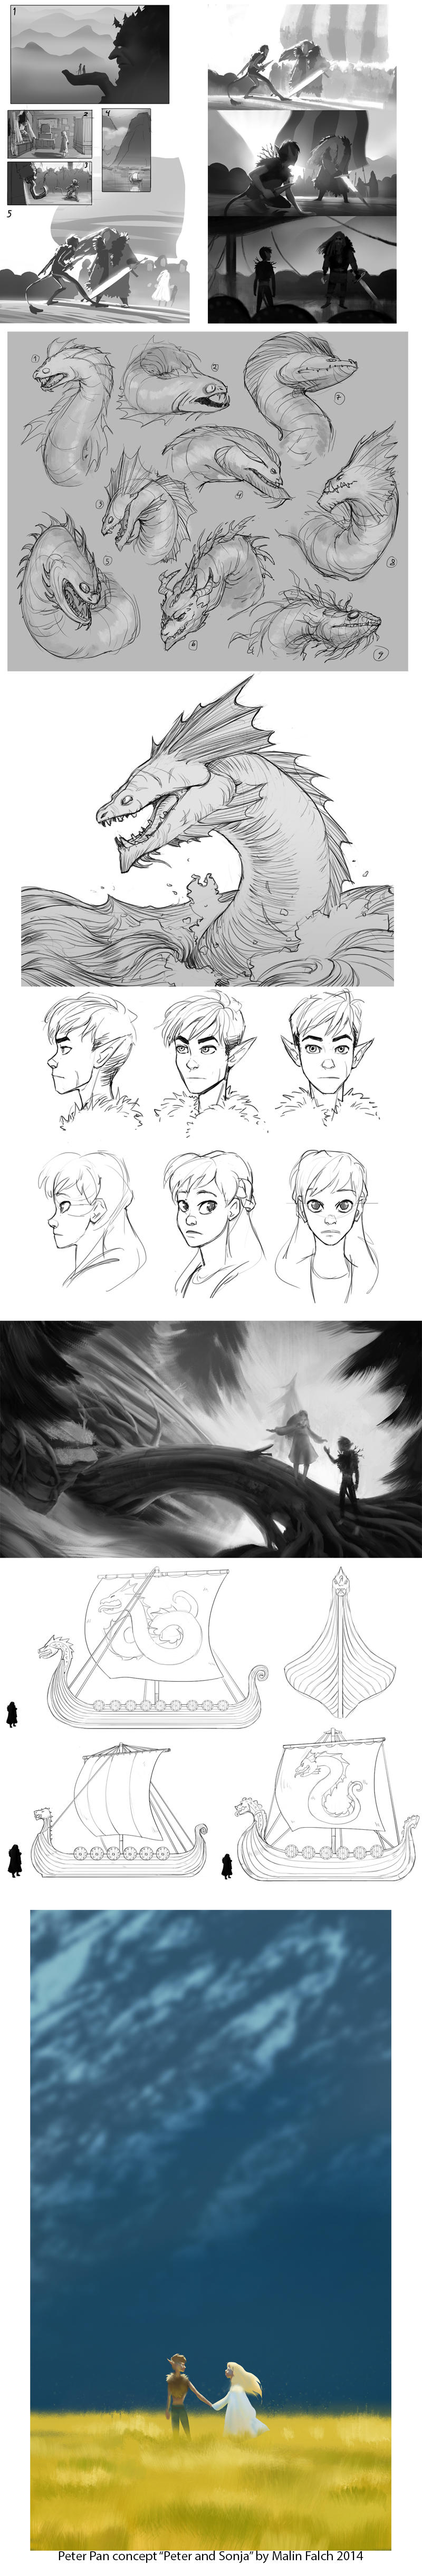 Peter Pan concept sketches by Detkef